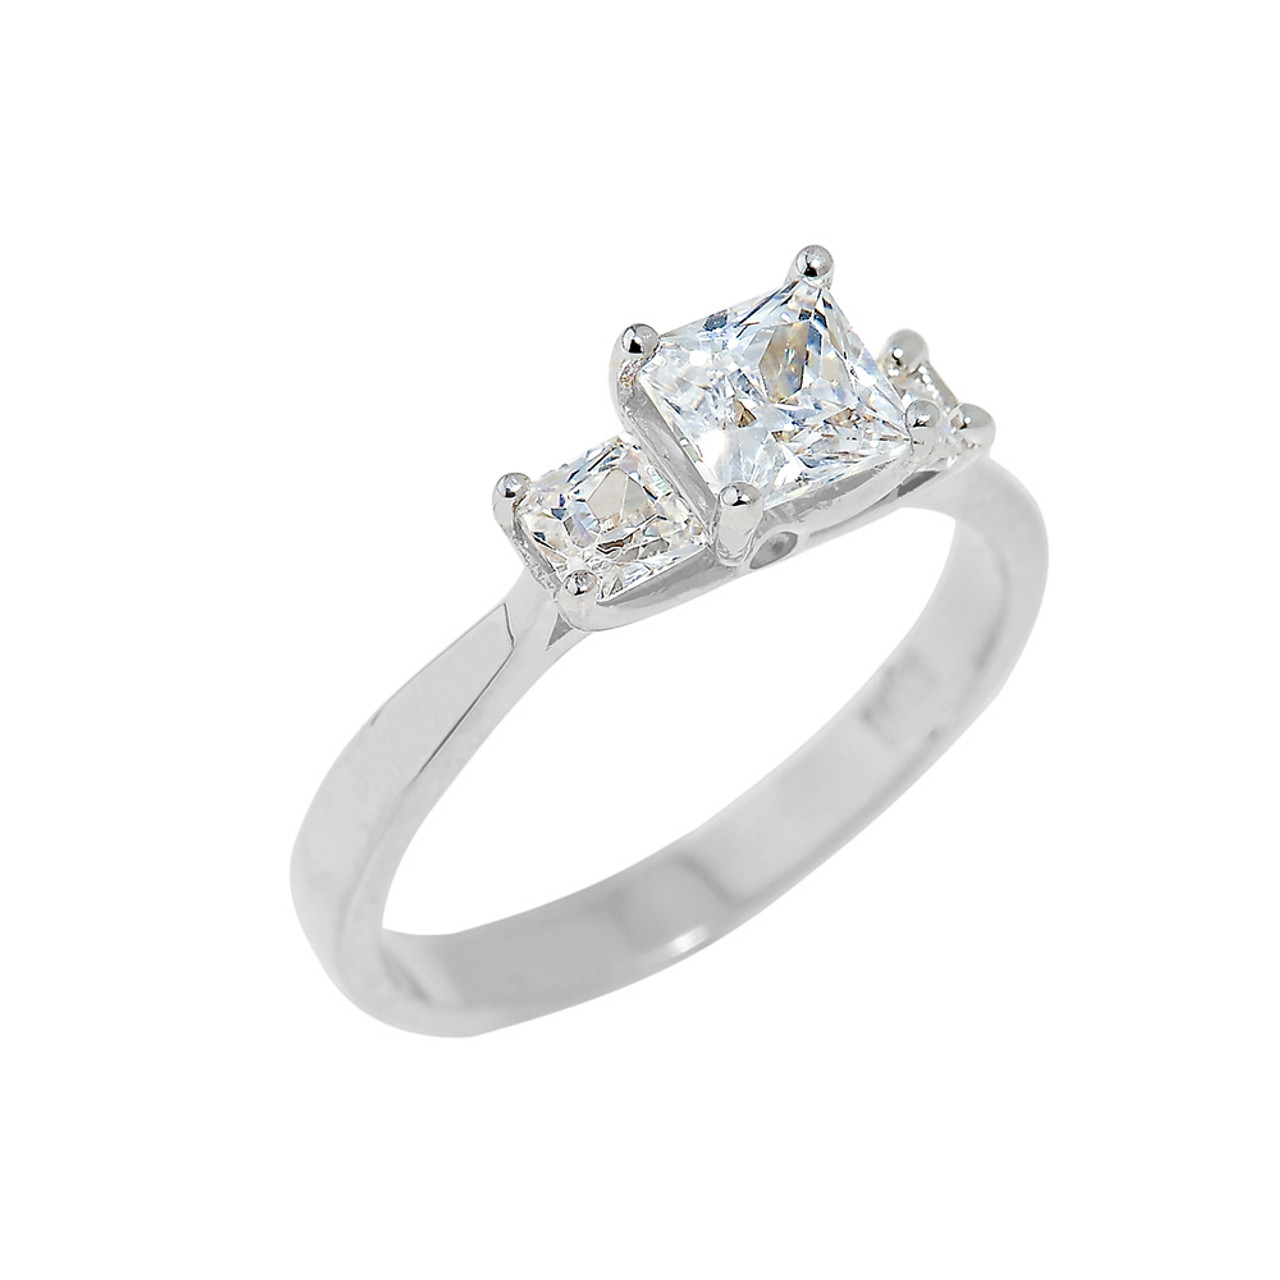 White Gold Princess Cut Engagement Ring with CZ Engagement Rings